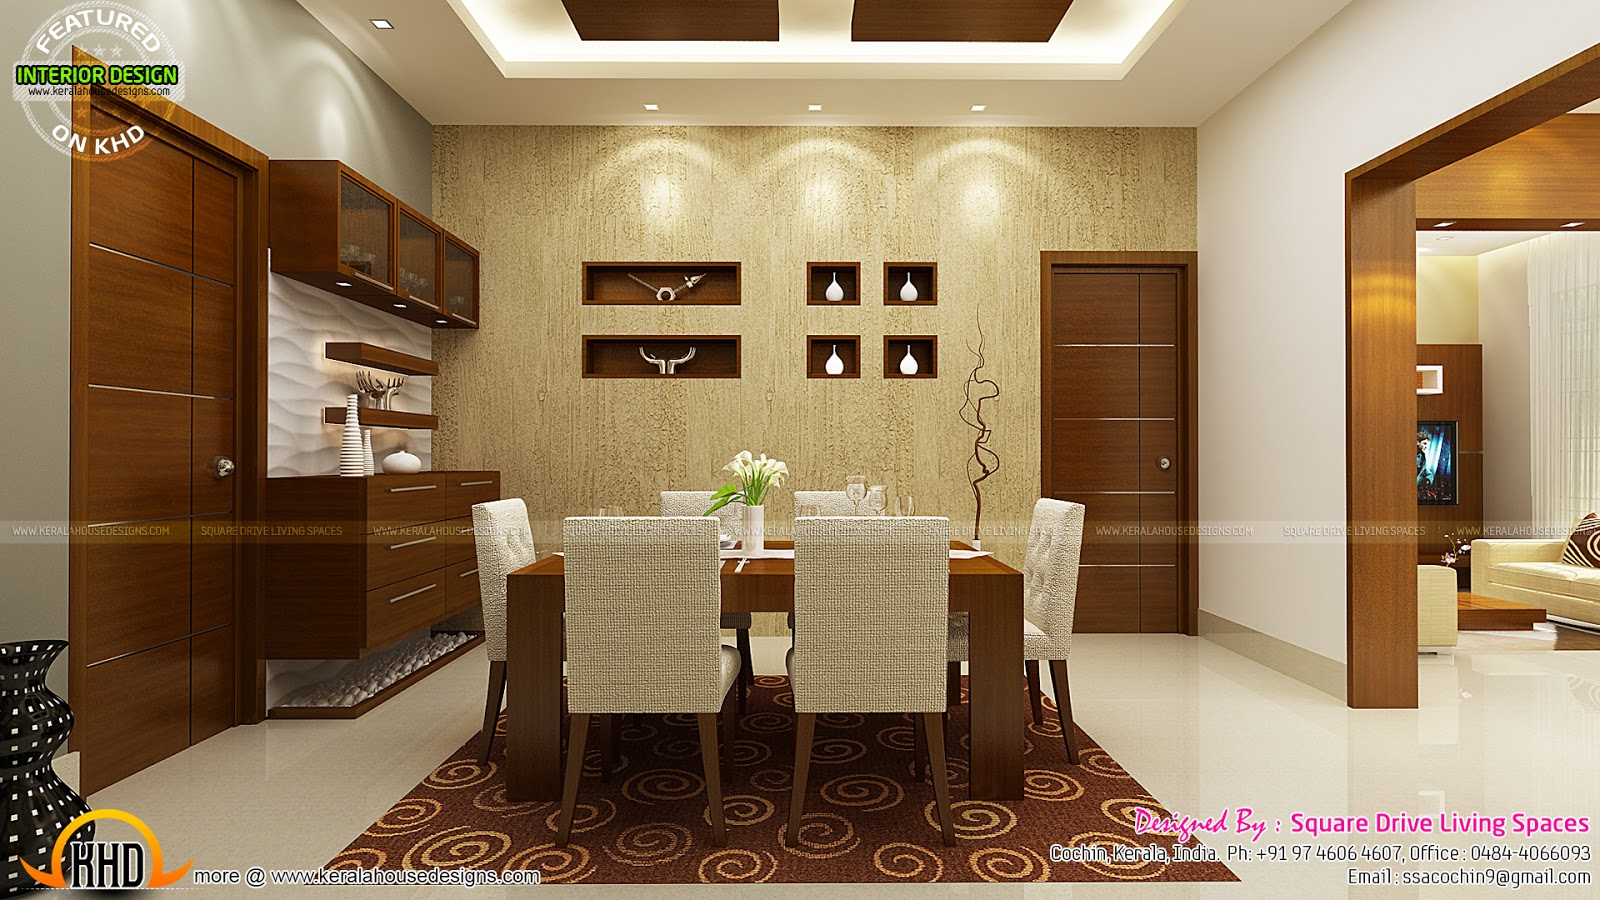 contemporary kitchen dining and living room kerala home design and floor plans. Black Bedroom Furniture Sets. Home Design Ideas